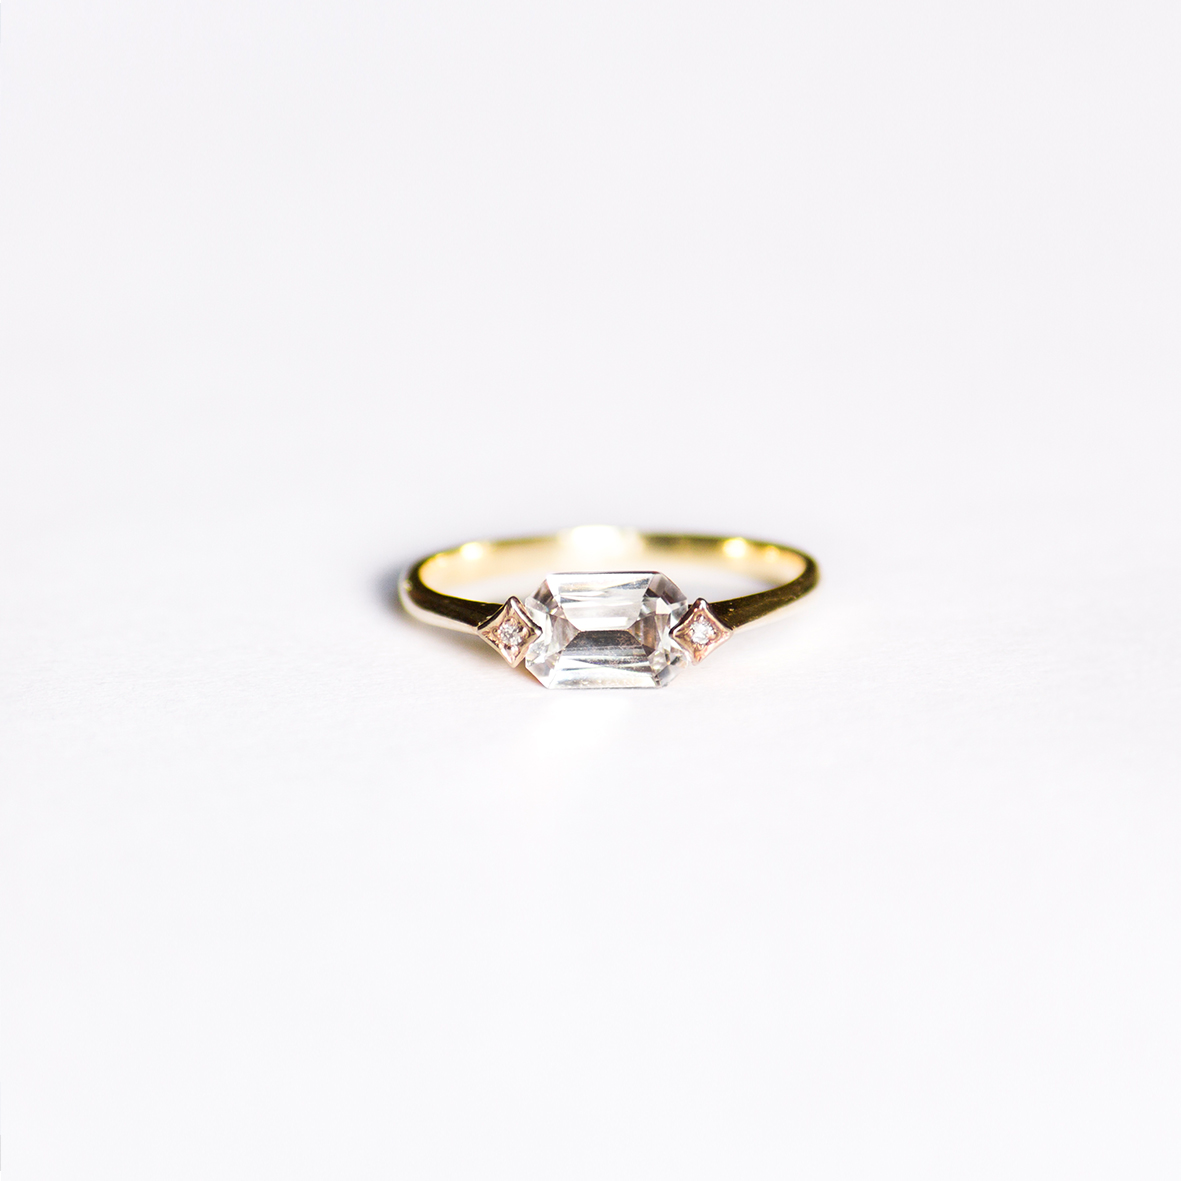 5. OONA_engagement_principal_single sapphire ring copia